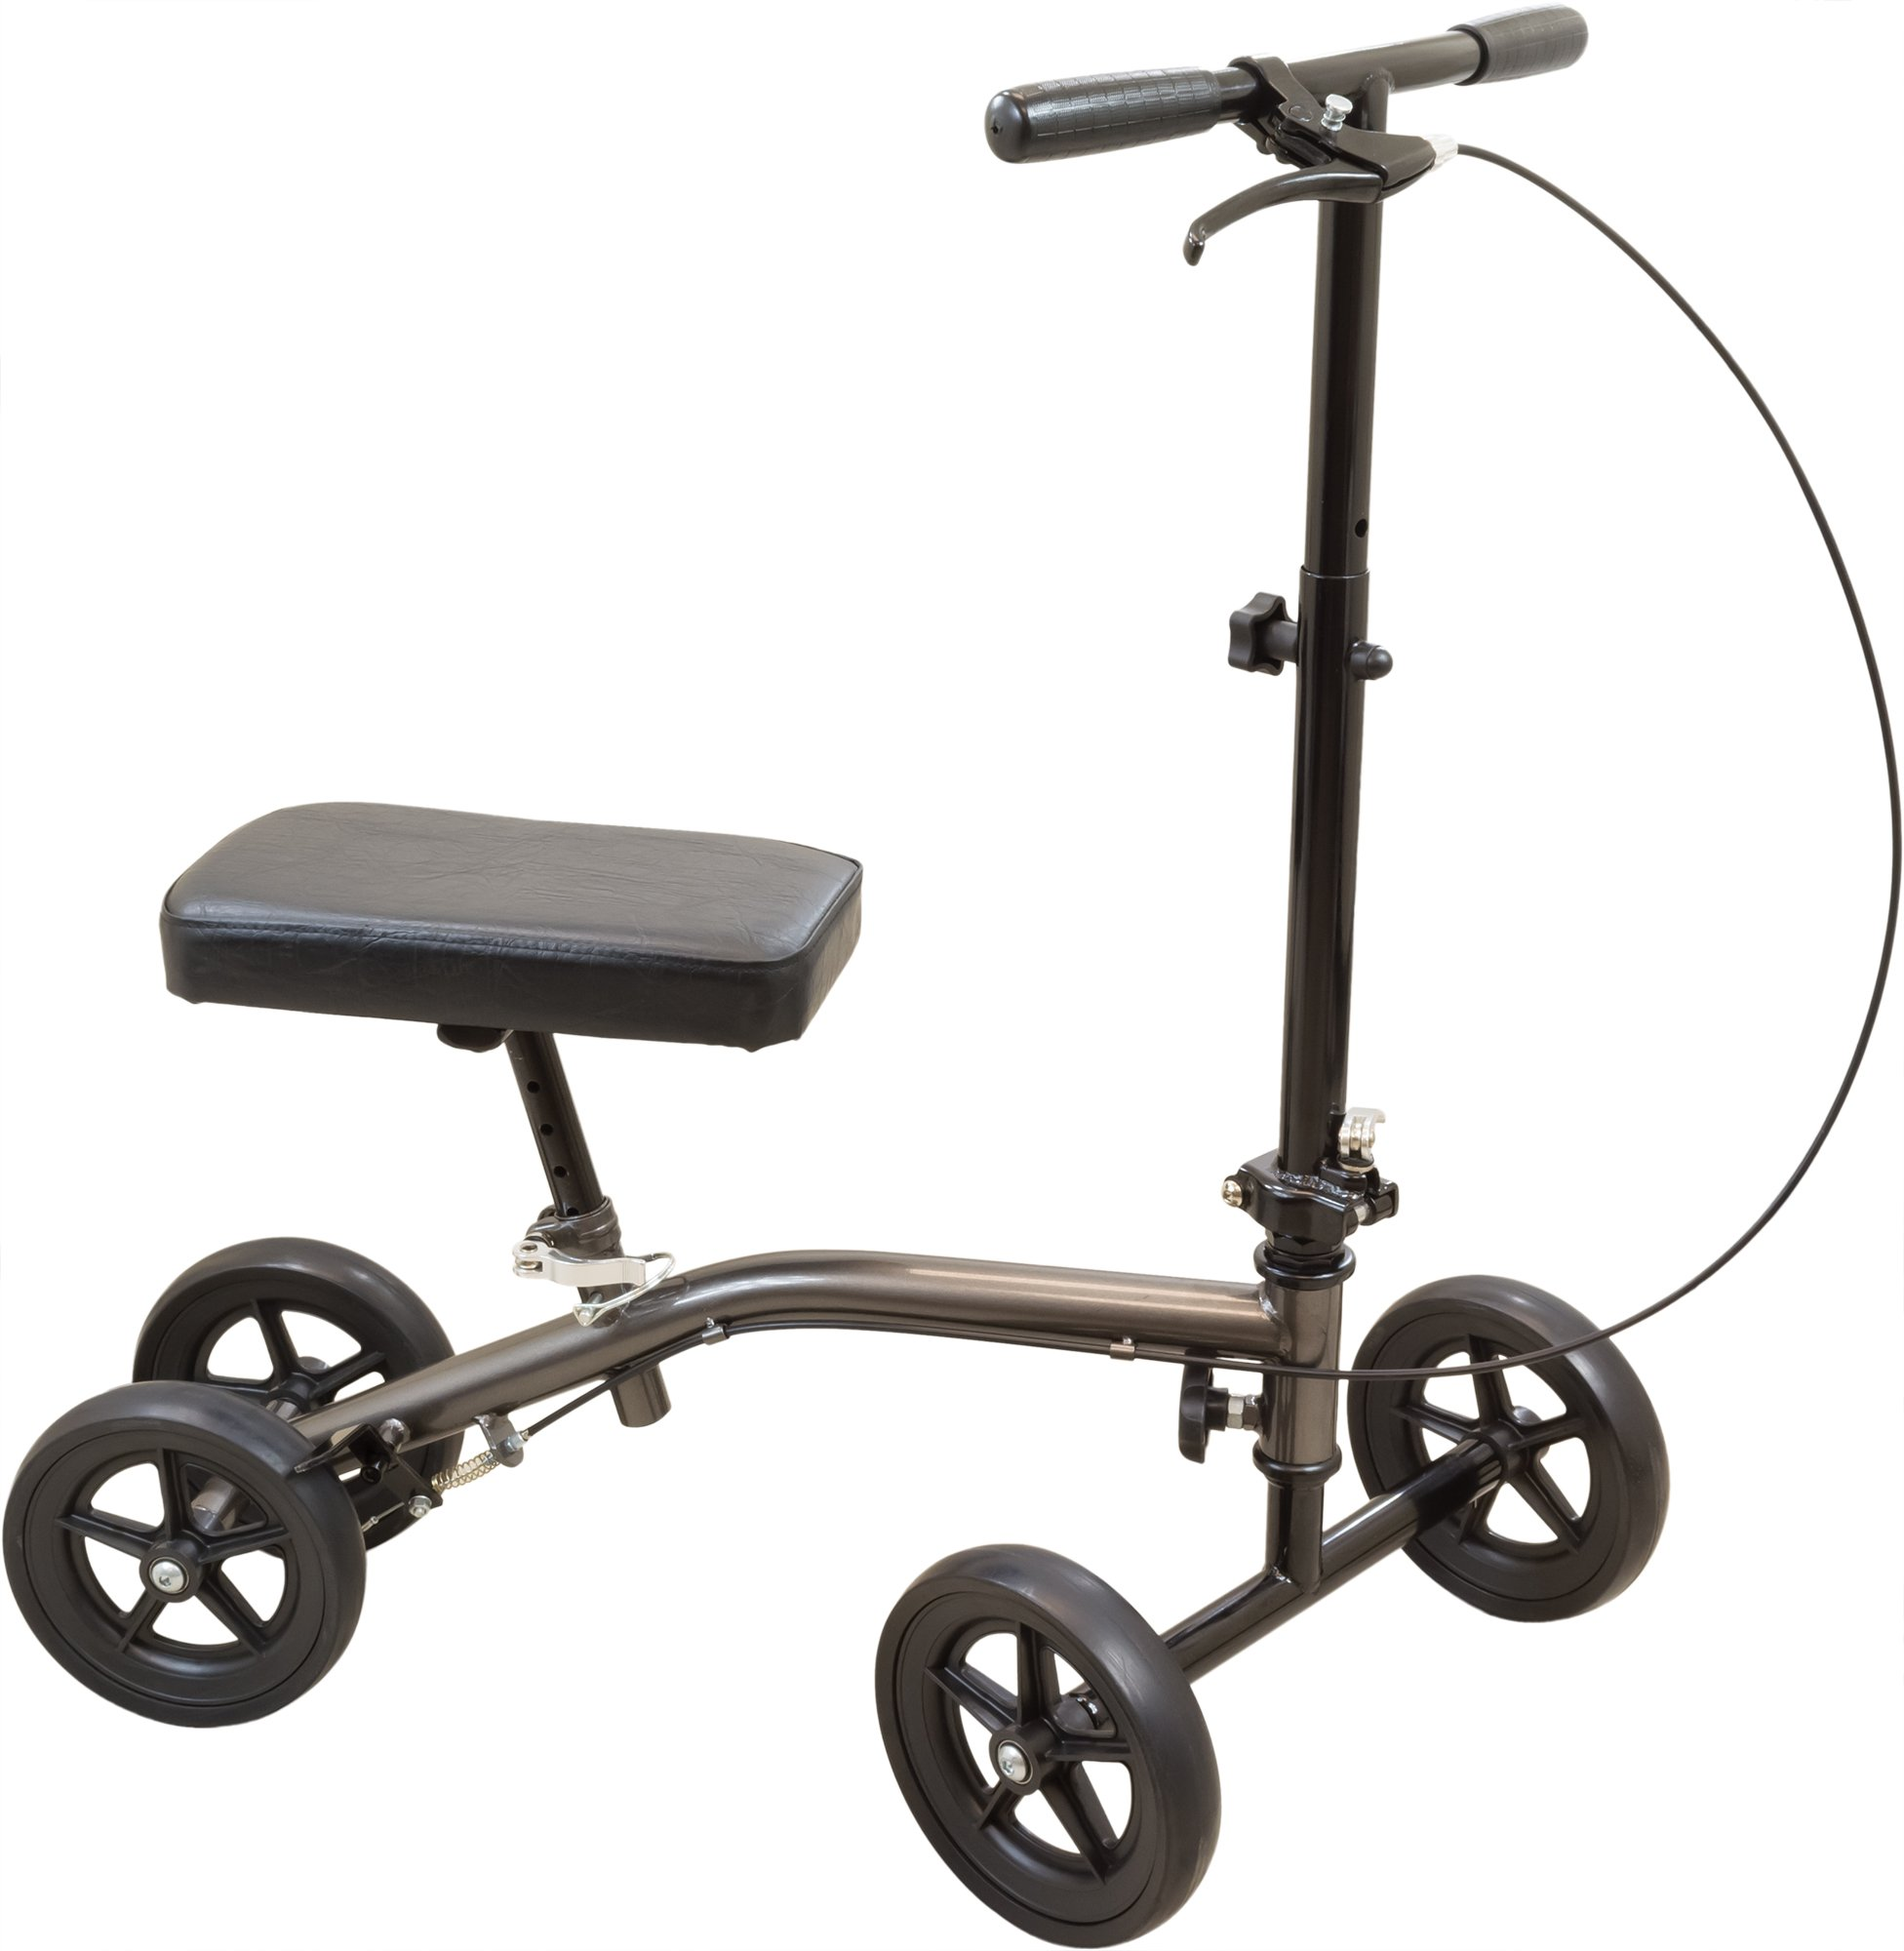 Roscoe Economy Knee Scooter, Knee Walker for Foot Injuries and Ankle Injuries, Knee Crutch with Adjustable Handlebars, Sterling Grey by Roscoe